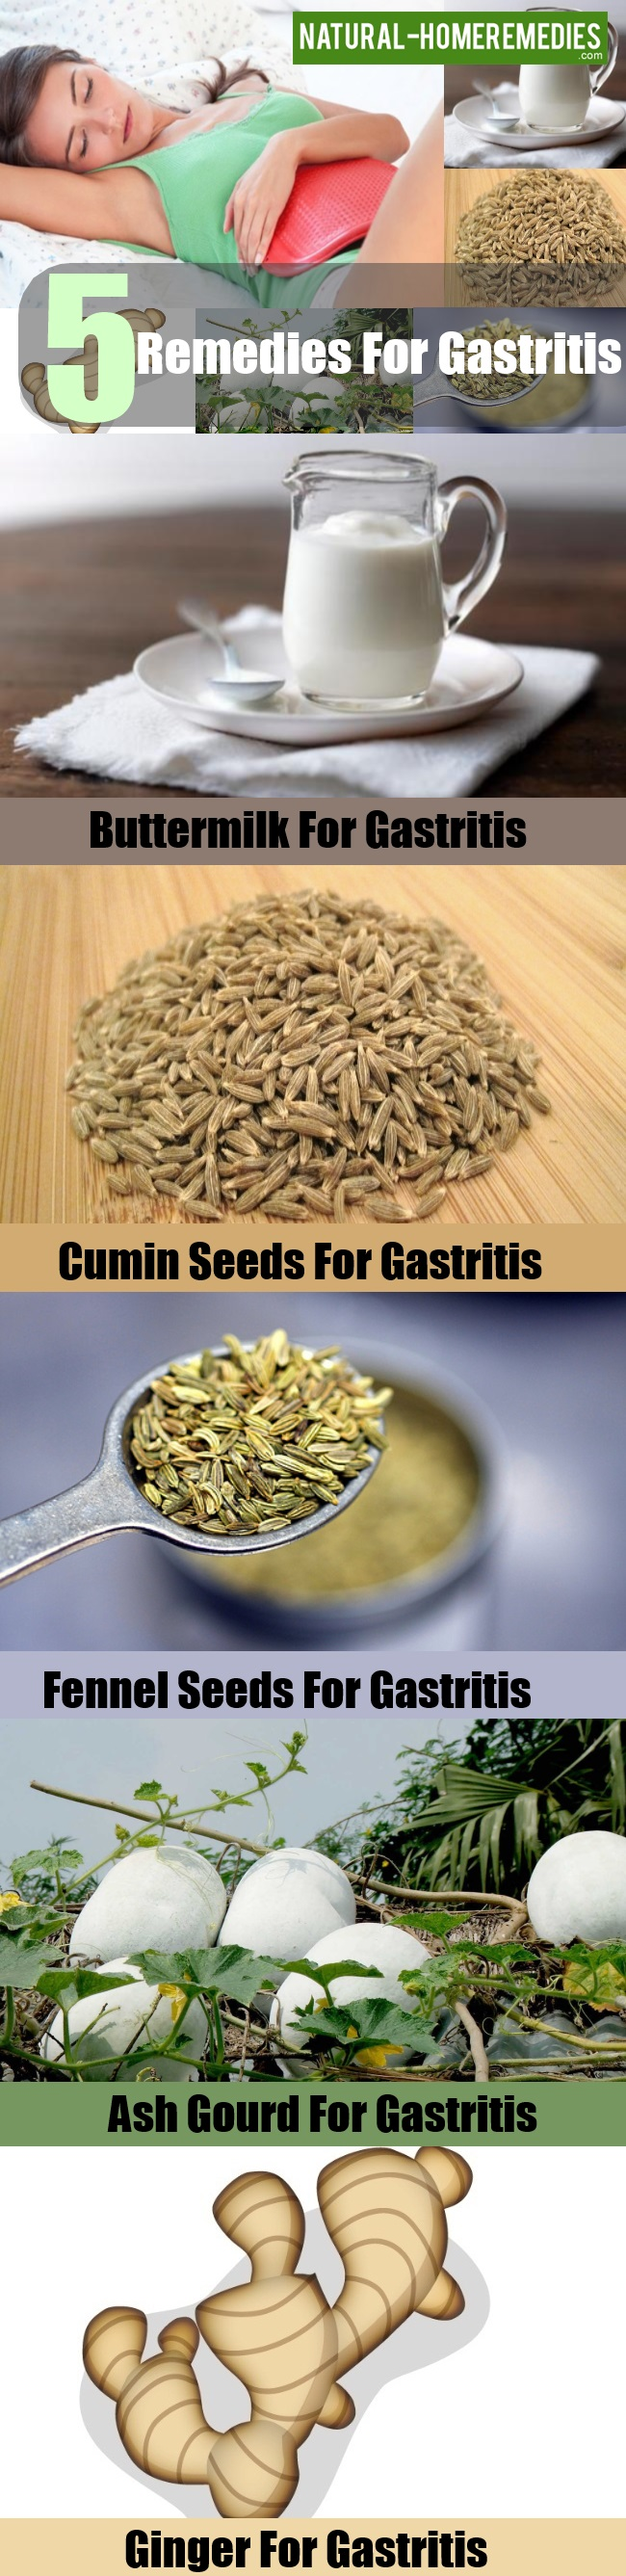 5 Home Remedies For Gastritis - Natural Treatments & Cure For